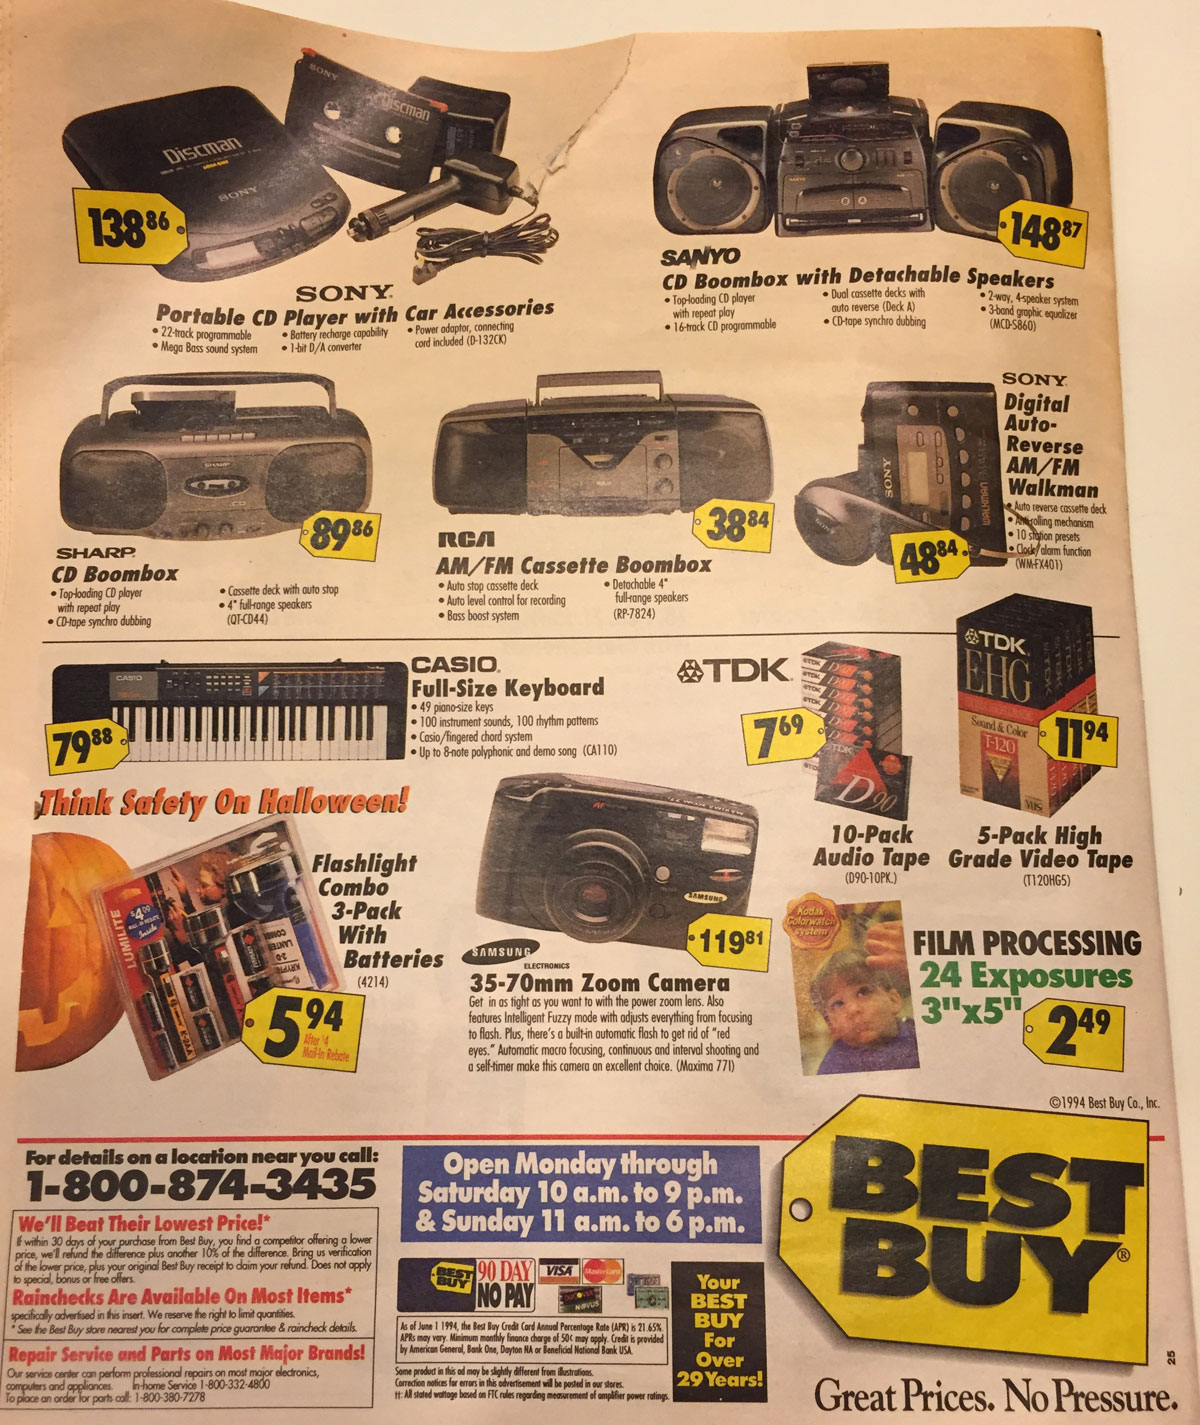 this-best-buy-flyer-from-1994-shows-how-fast-technology-has-changed-9.jpg